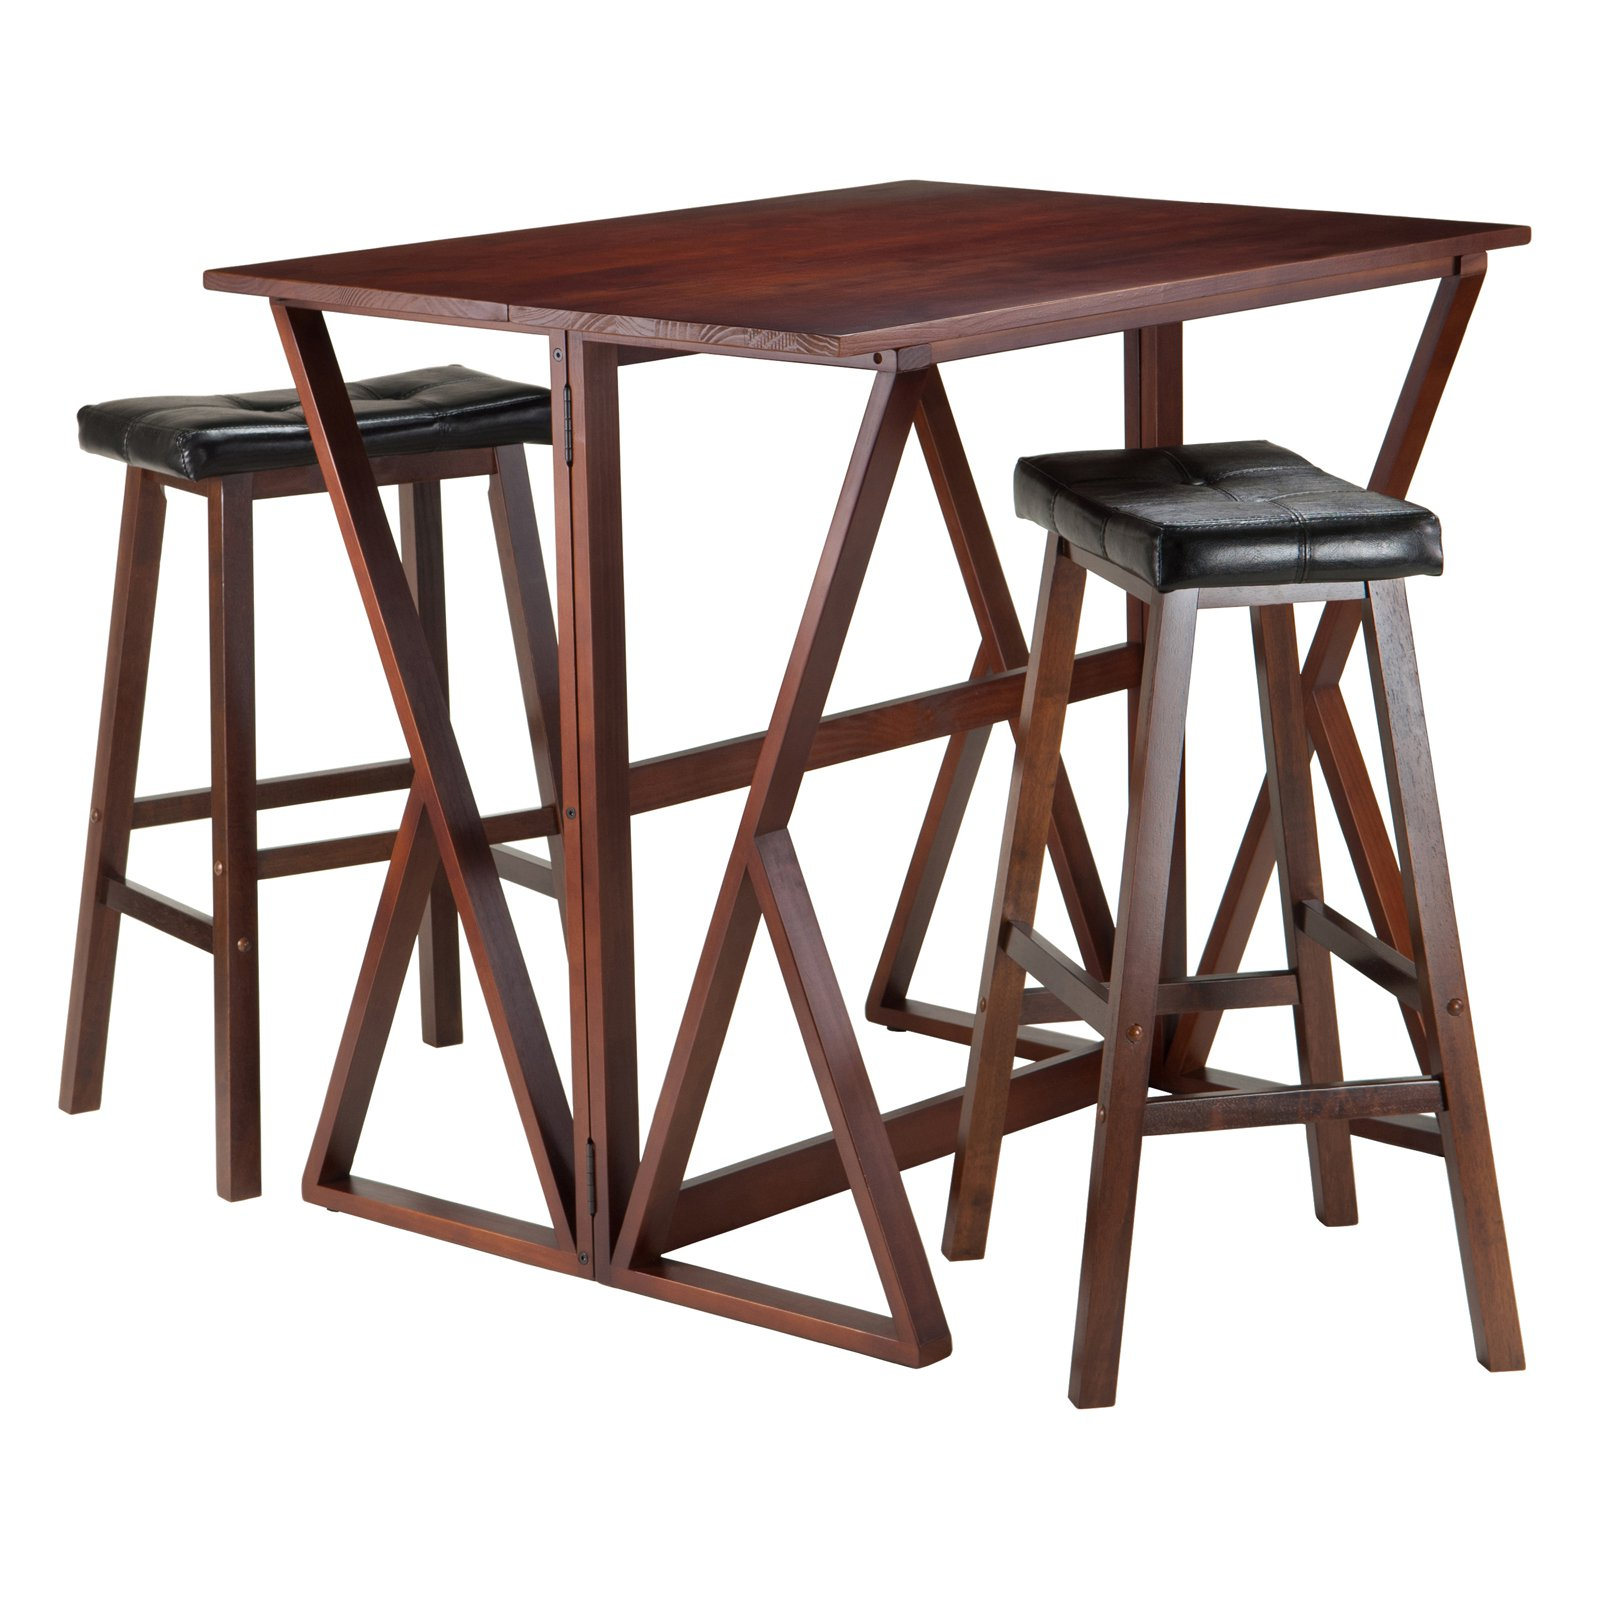 Most Up To Date Winsome Trading Harrington 3 Piece Counter Height Dining Table Set Inside Winsome 3 Piece Counter Height Dining Sets (View 8 of 25)